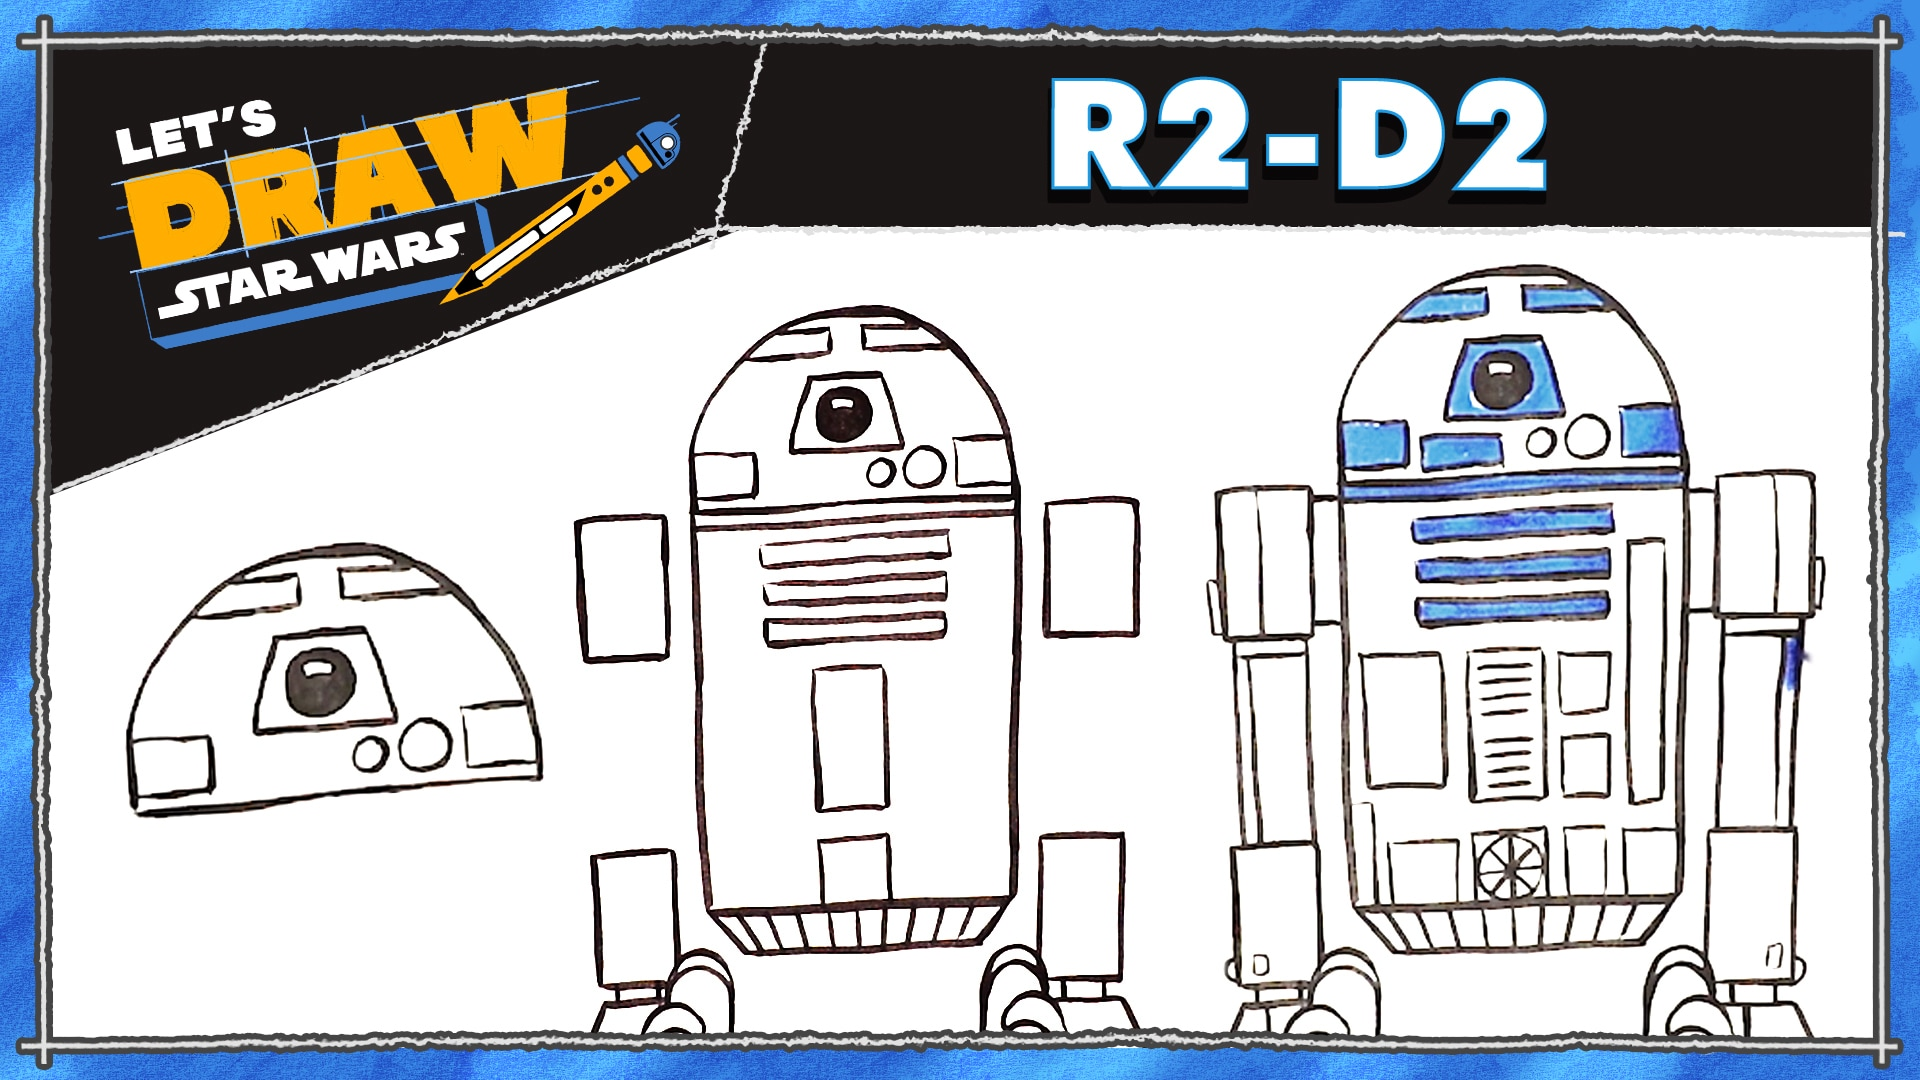 Let's Draw! R2-D2